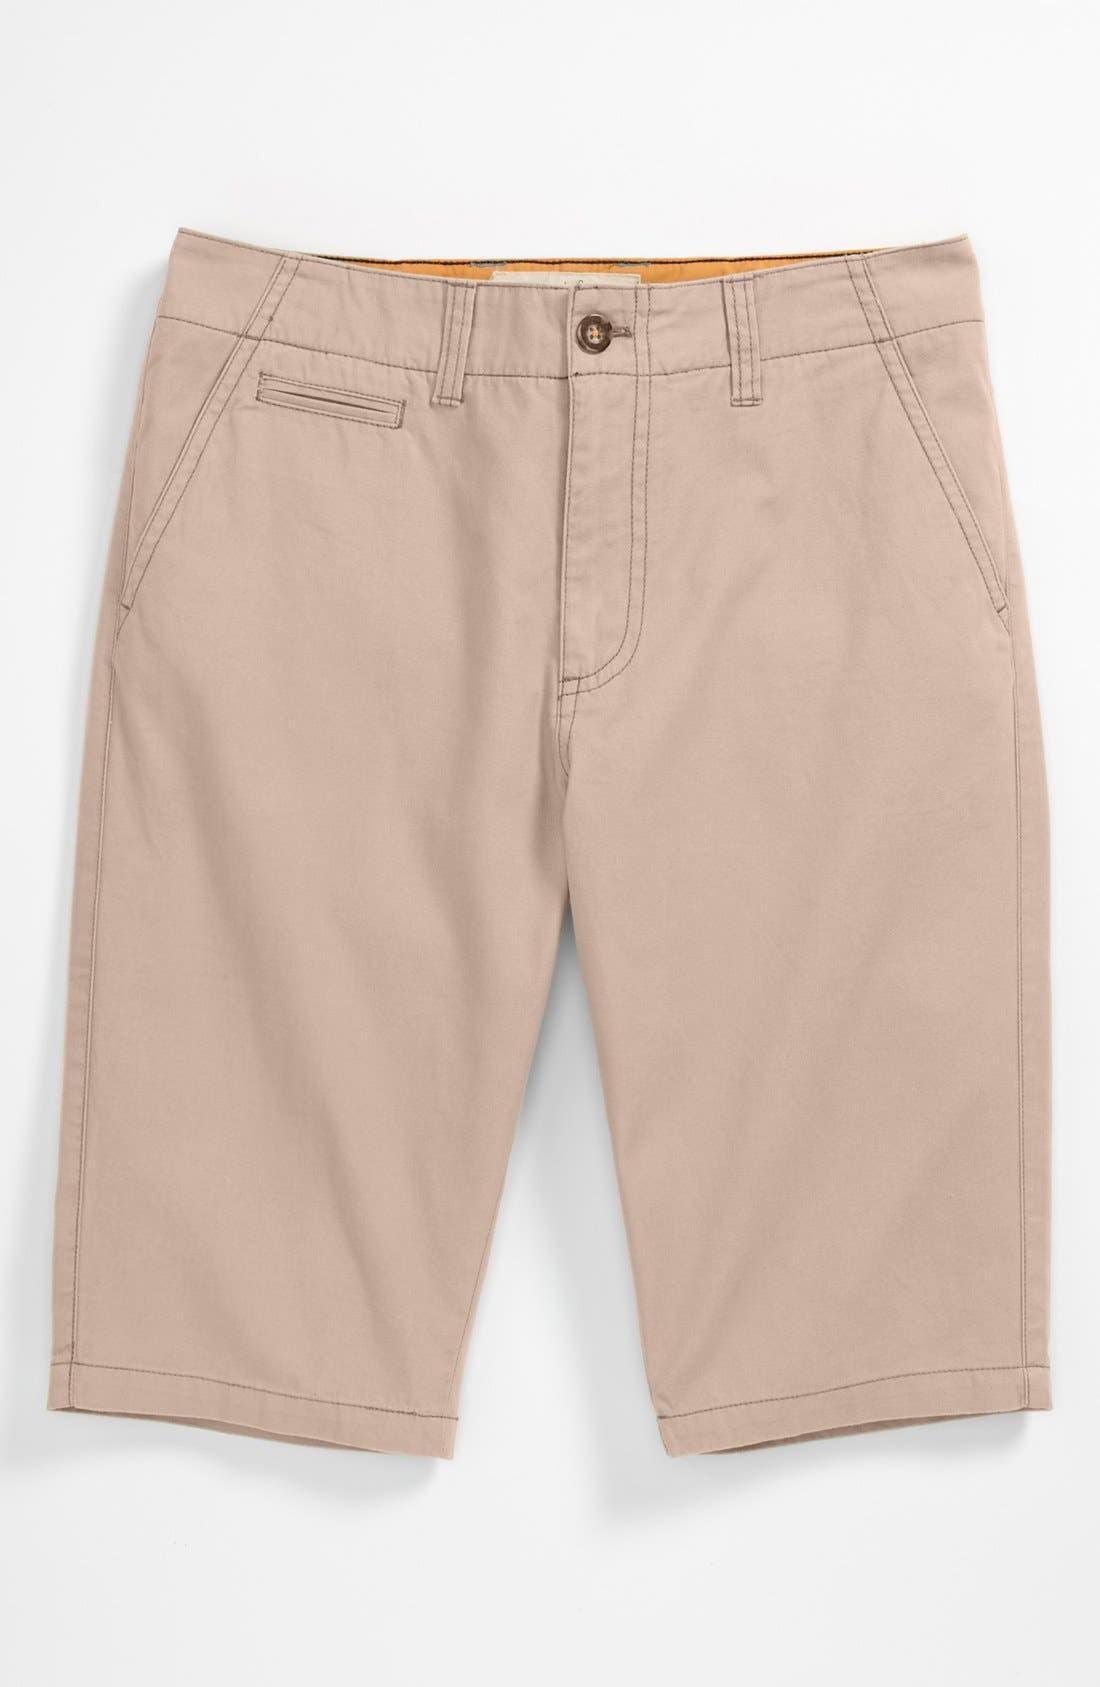 Main Image - Johnnie b Chino Shorts (Big Boys)